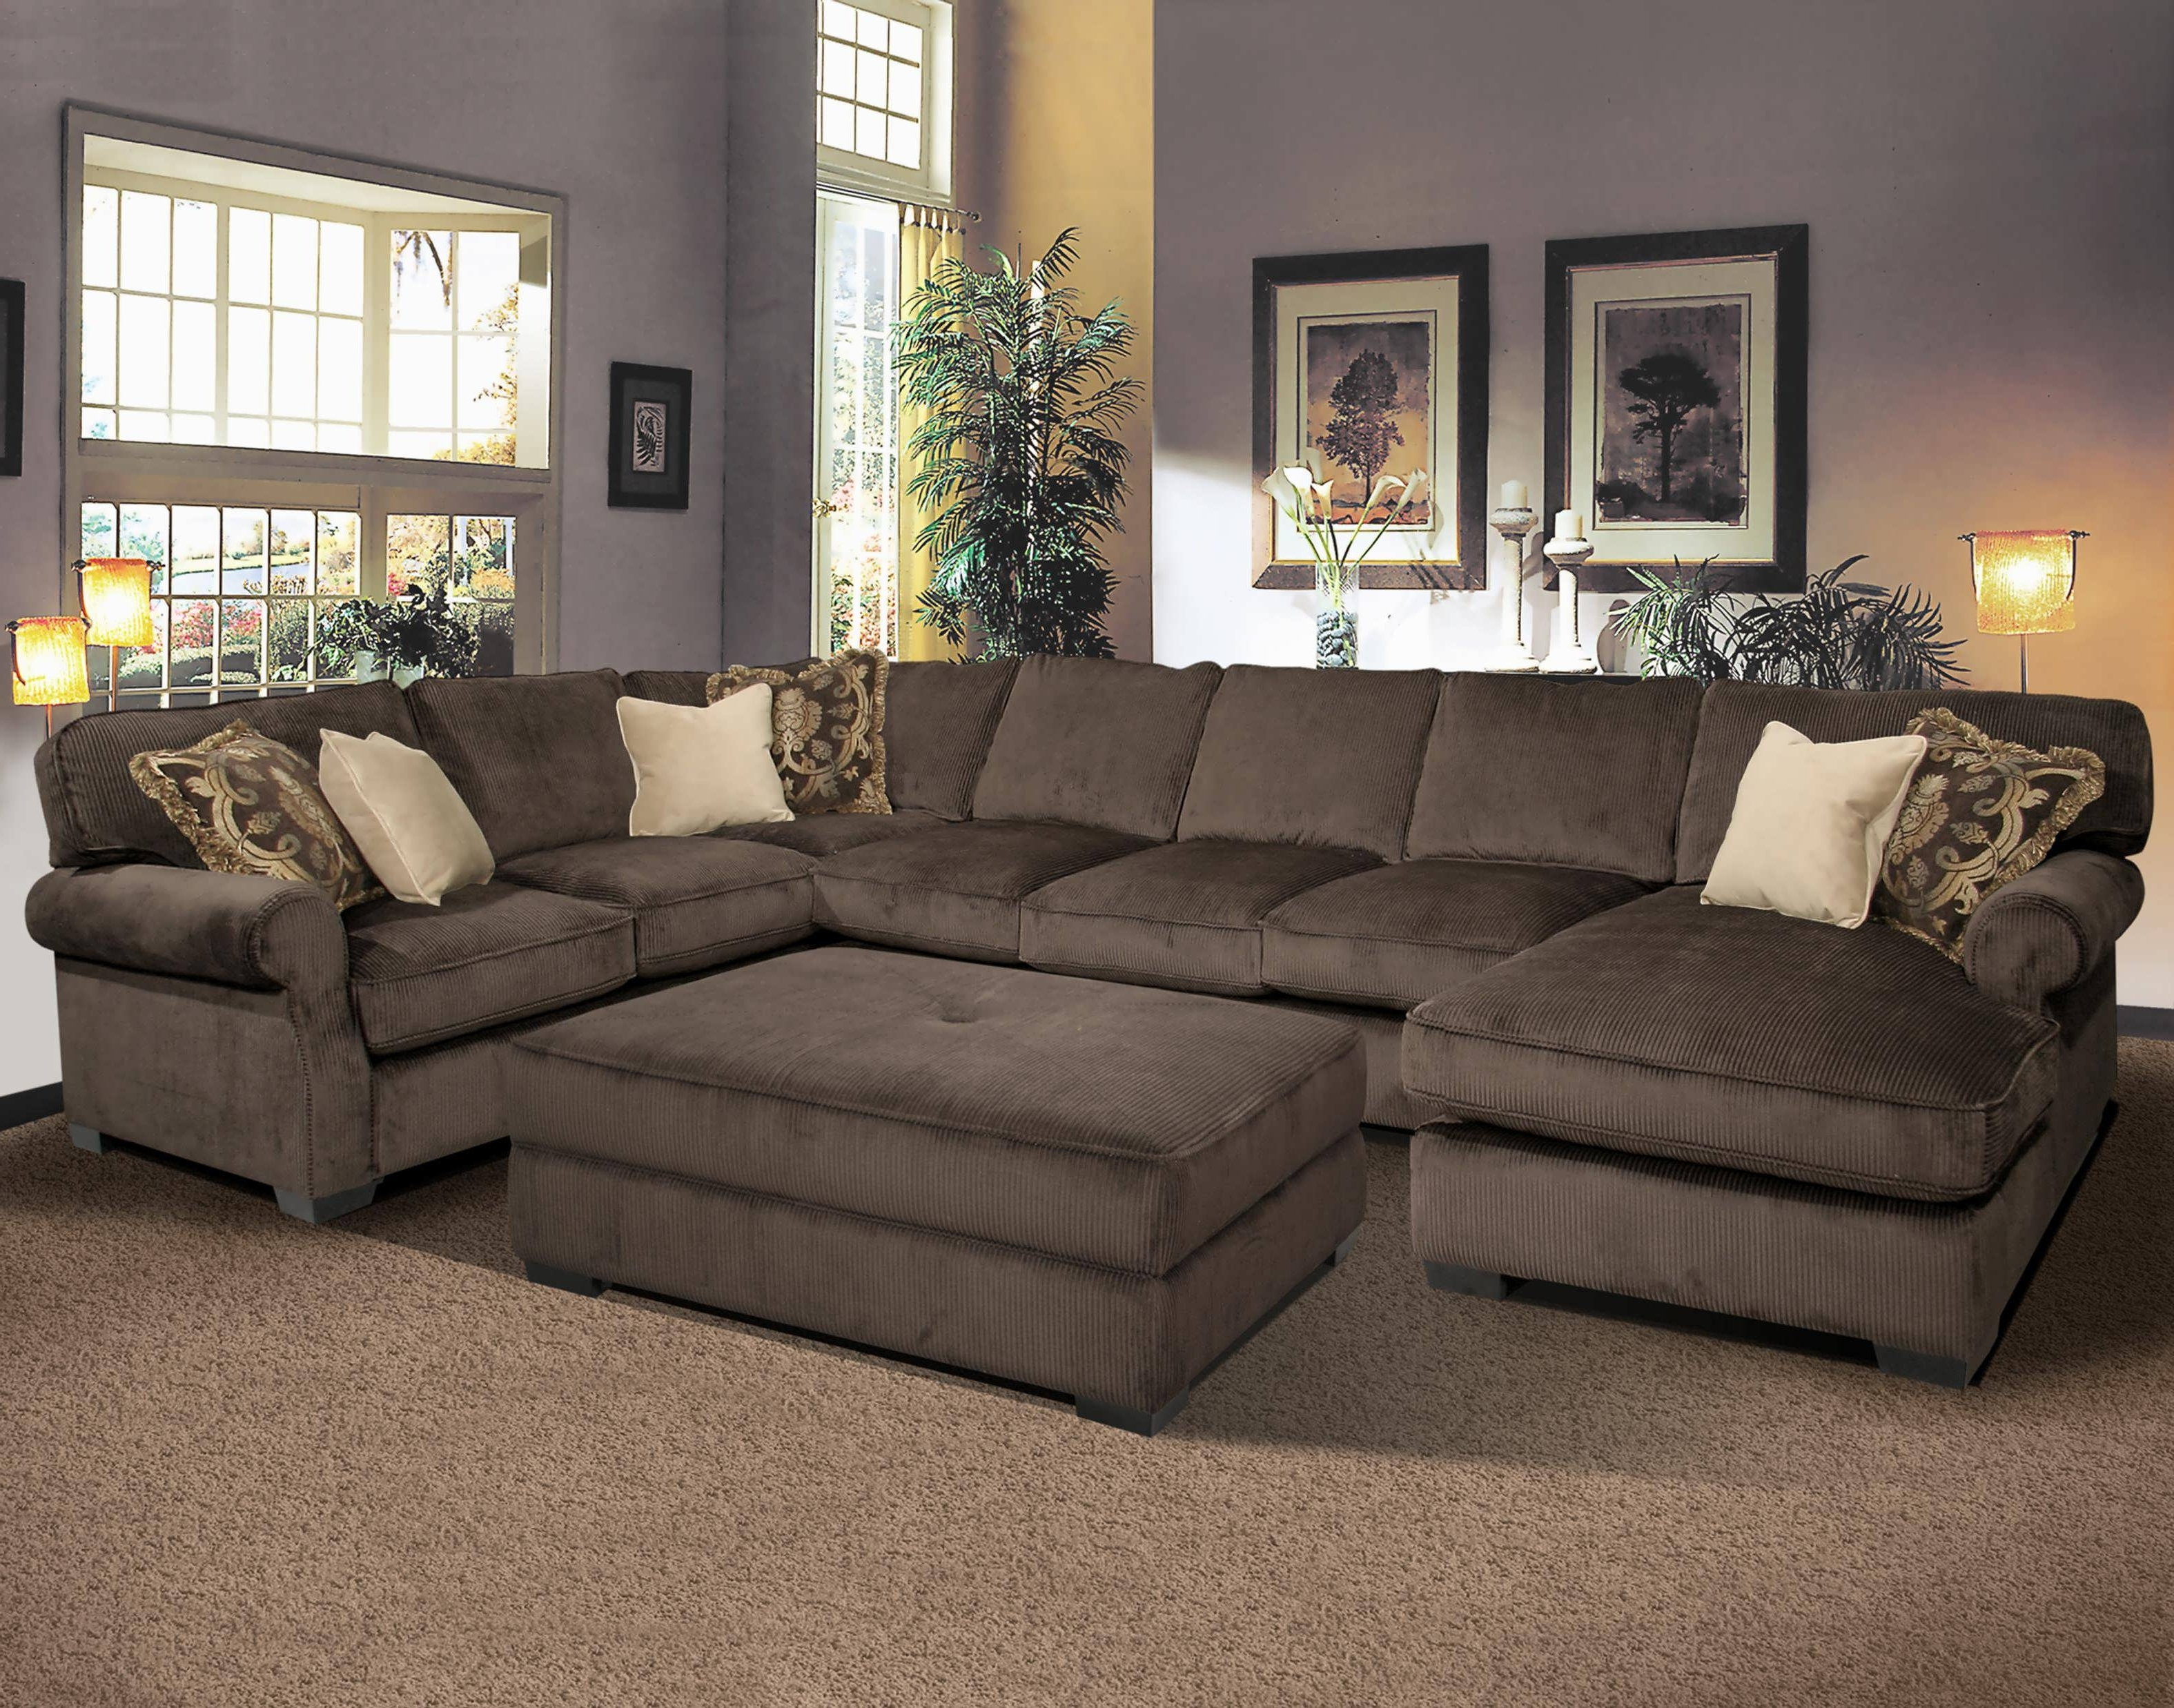 Well Known Deep Seat Sectionals With Chaise In Sofa : Velvet Sectional Black Sectional Couch Large Sectional (View 2 of 15)